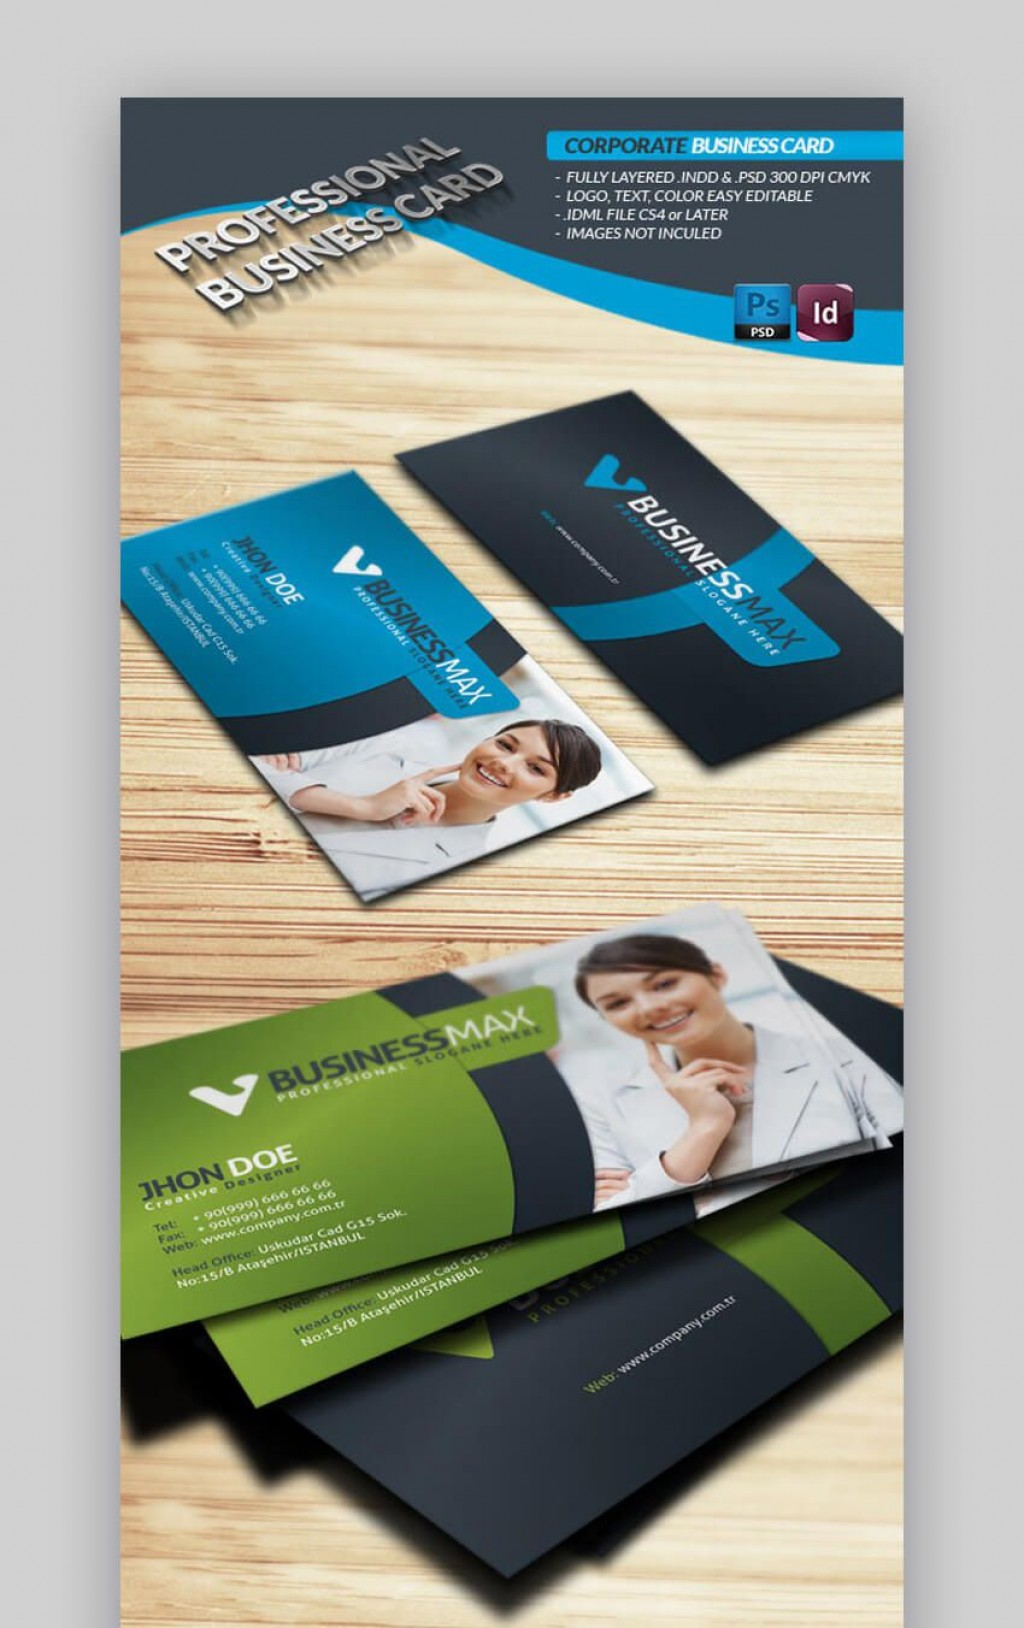 008 Shocking Busines Card Layout Indesign Inspiration  Size Template Free Download Cs6Large